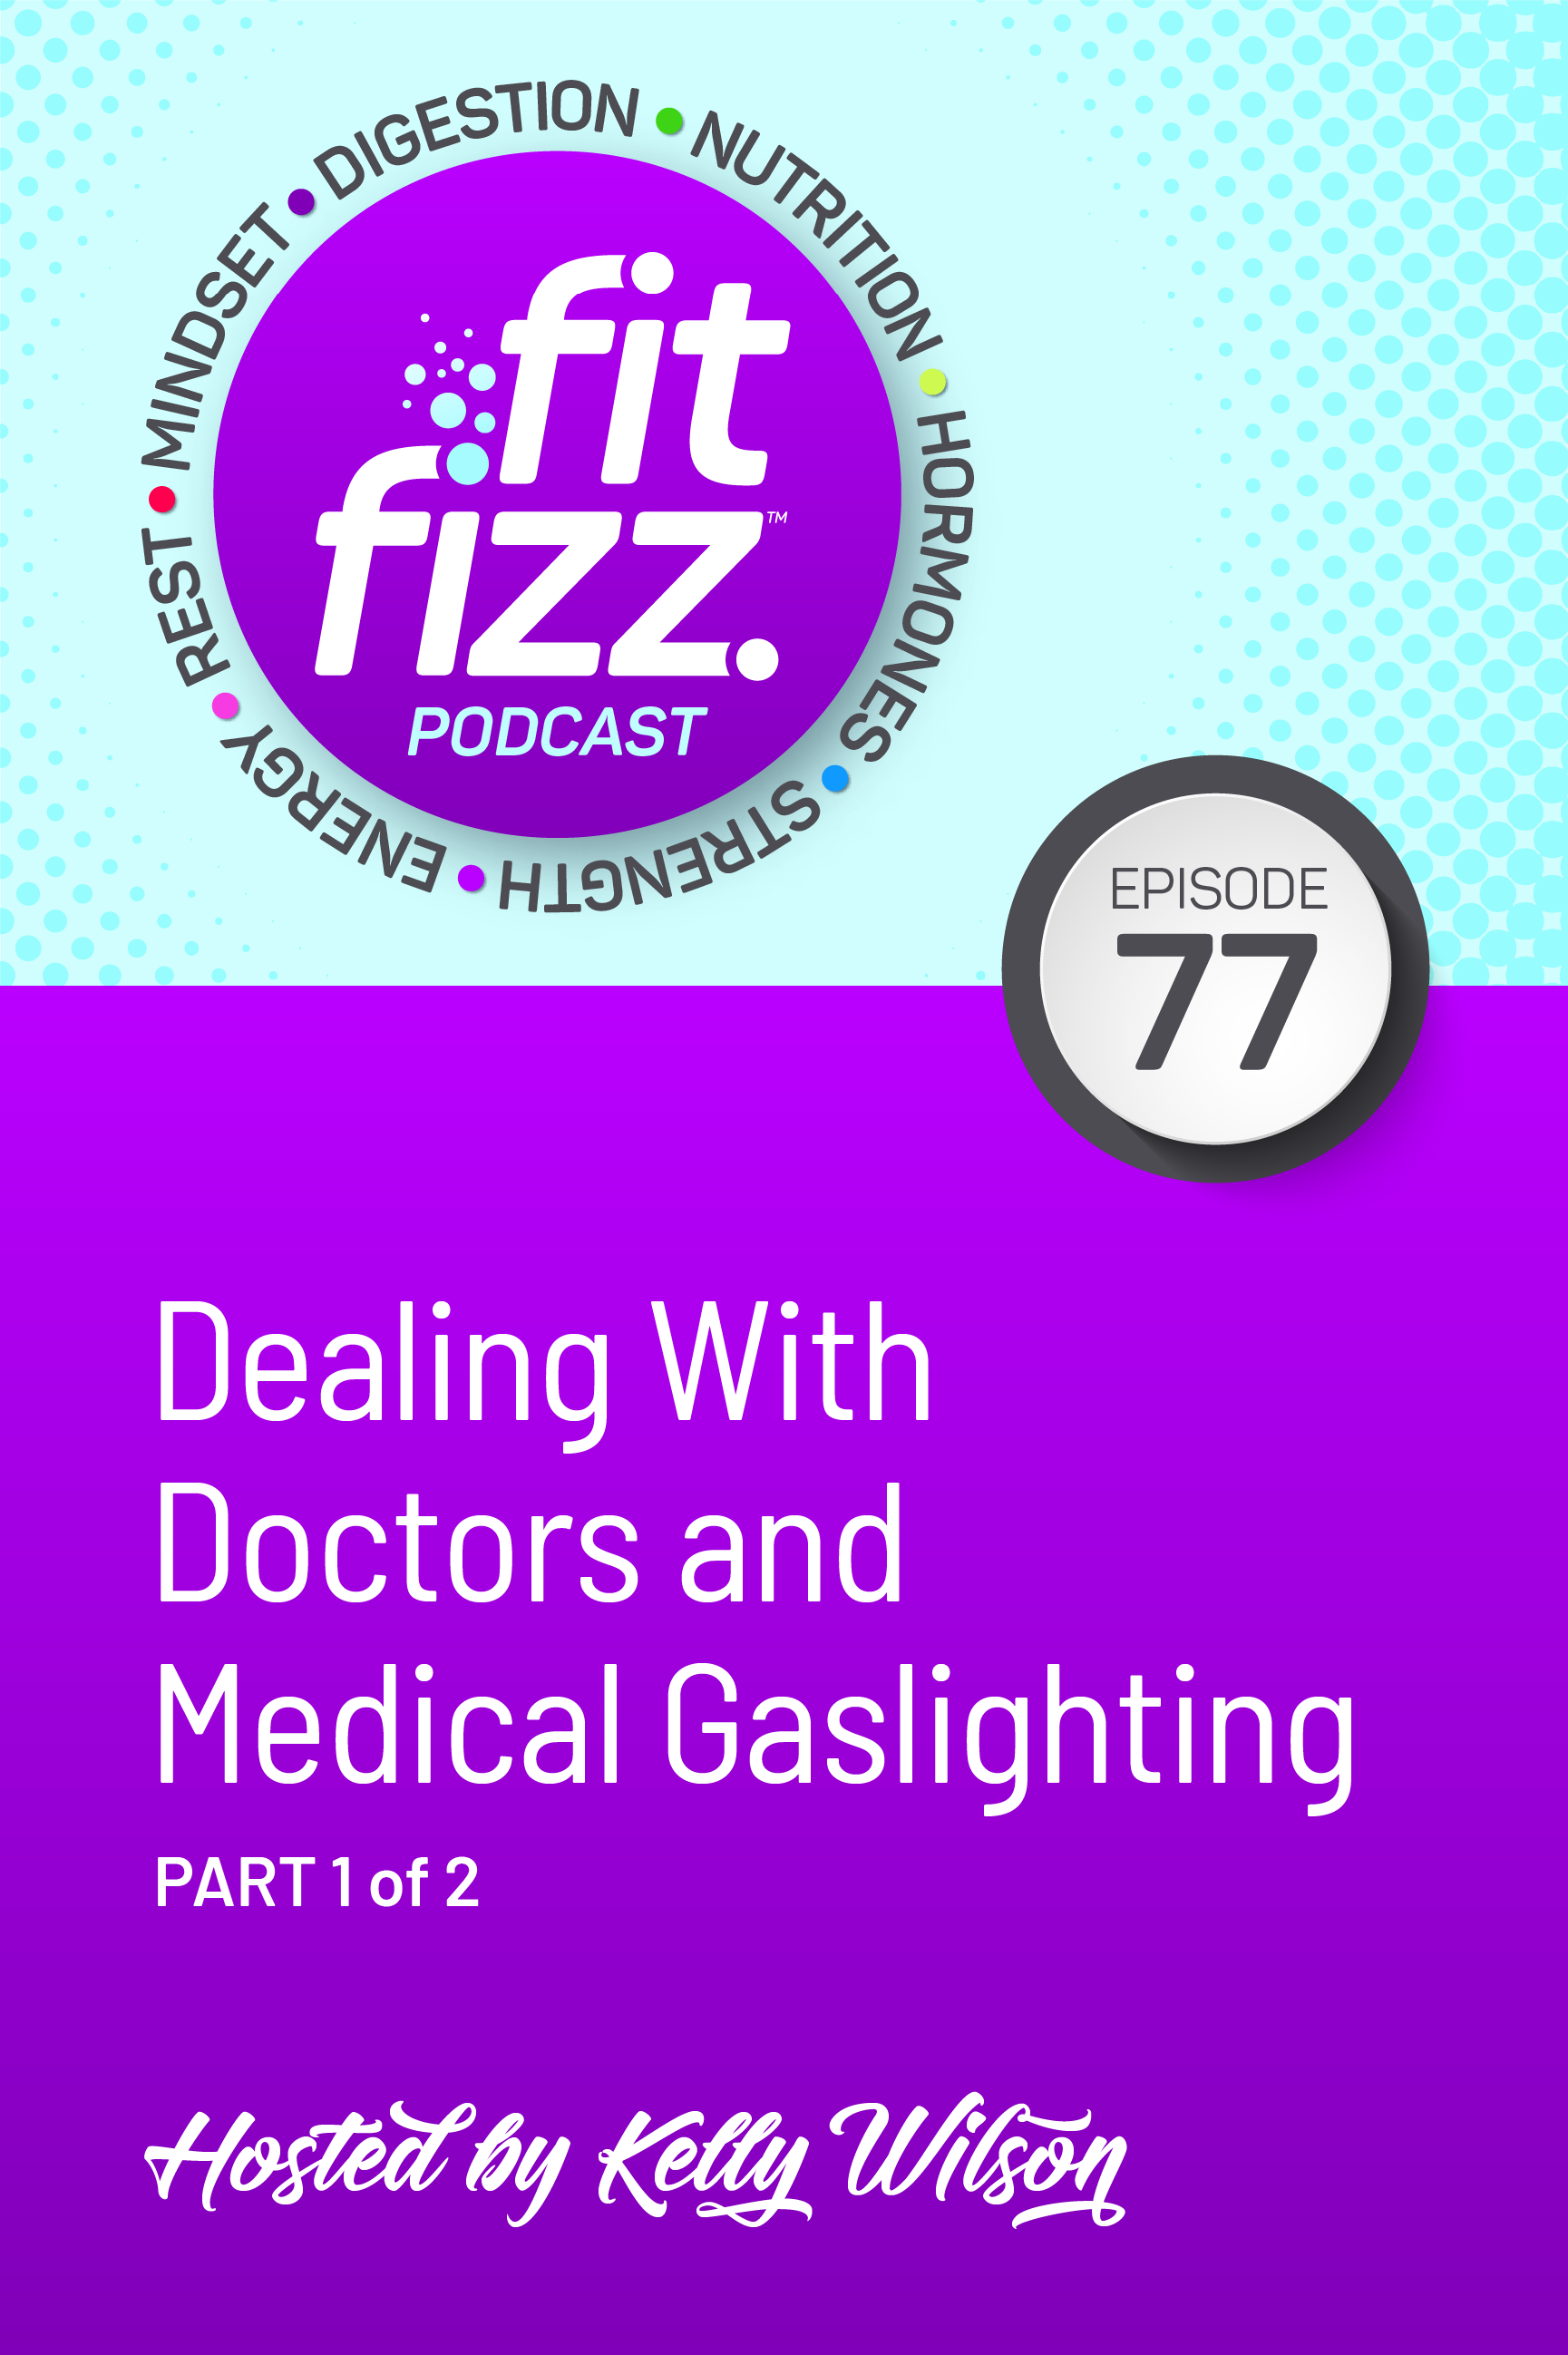 Ep. 77: Dealing With Doctors and Medical Gaslighting (Part 1 of 2)